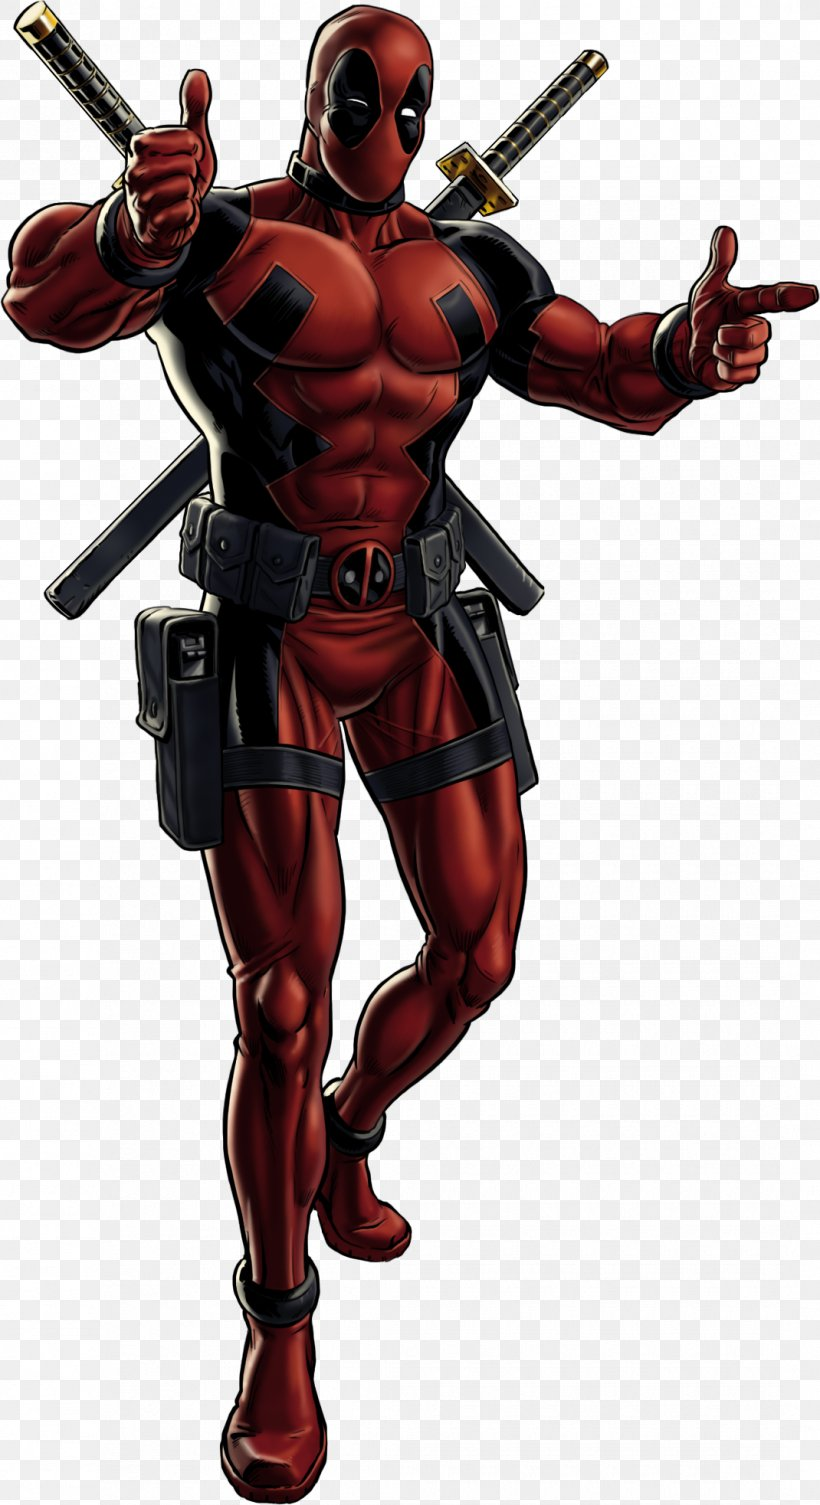 Marvel: Avengers Alliance Deadpool Thor Wolverine Marvel Comics, PNG, 1070x1965px, Marvel Avengers Alliance, Action Figure, Armour, Avengers, Character Download Free